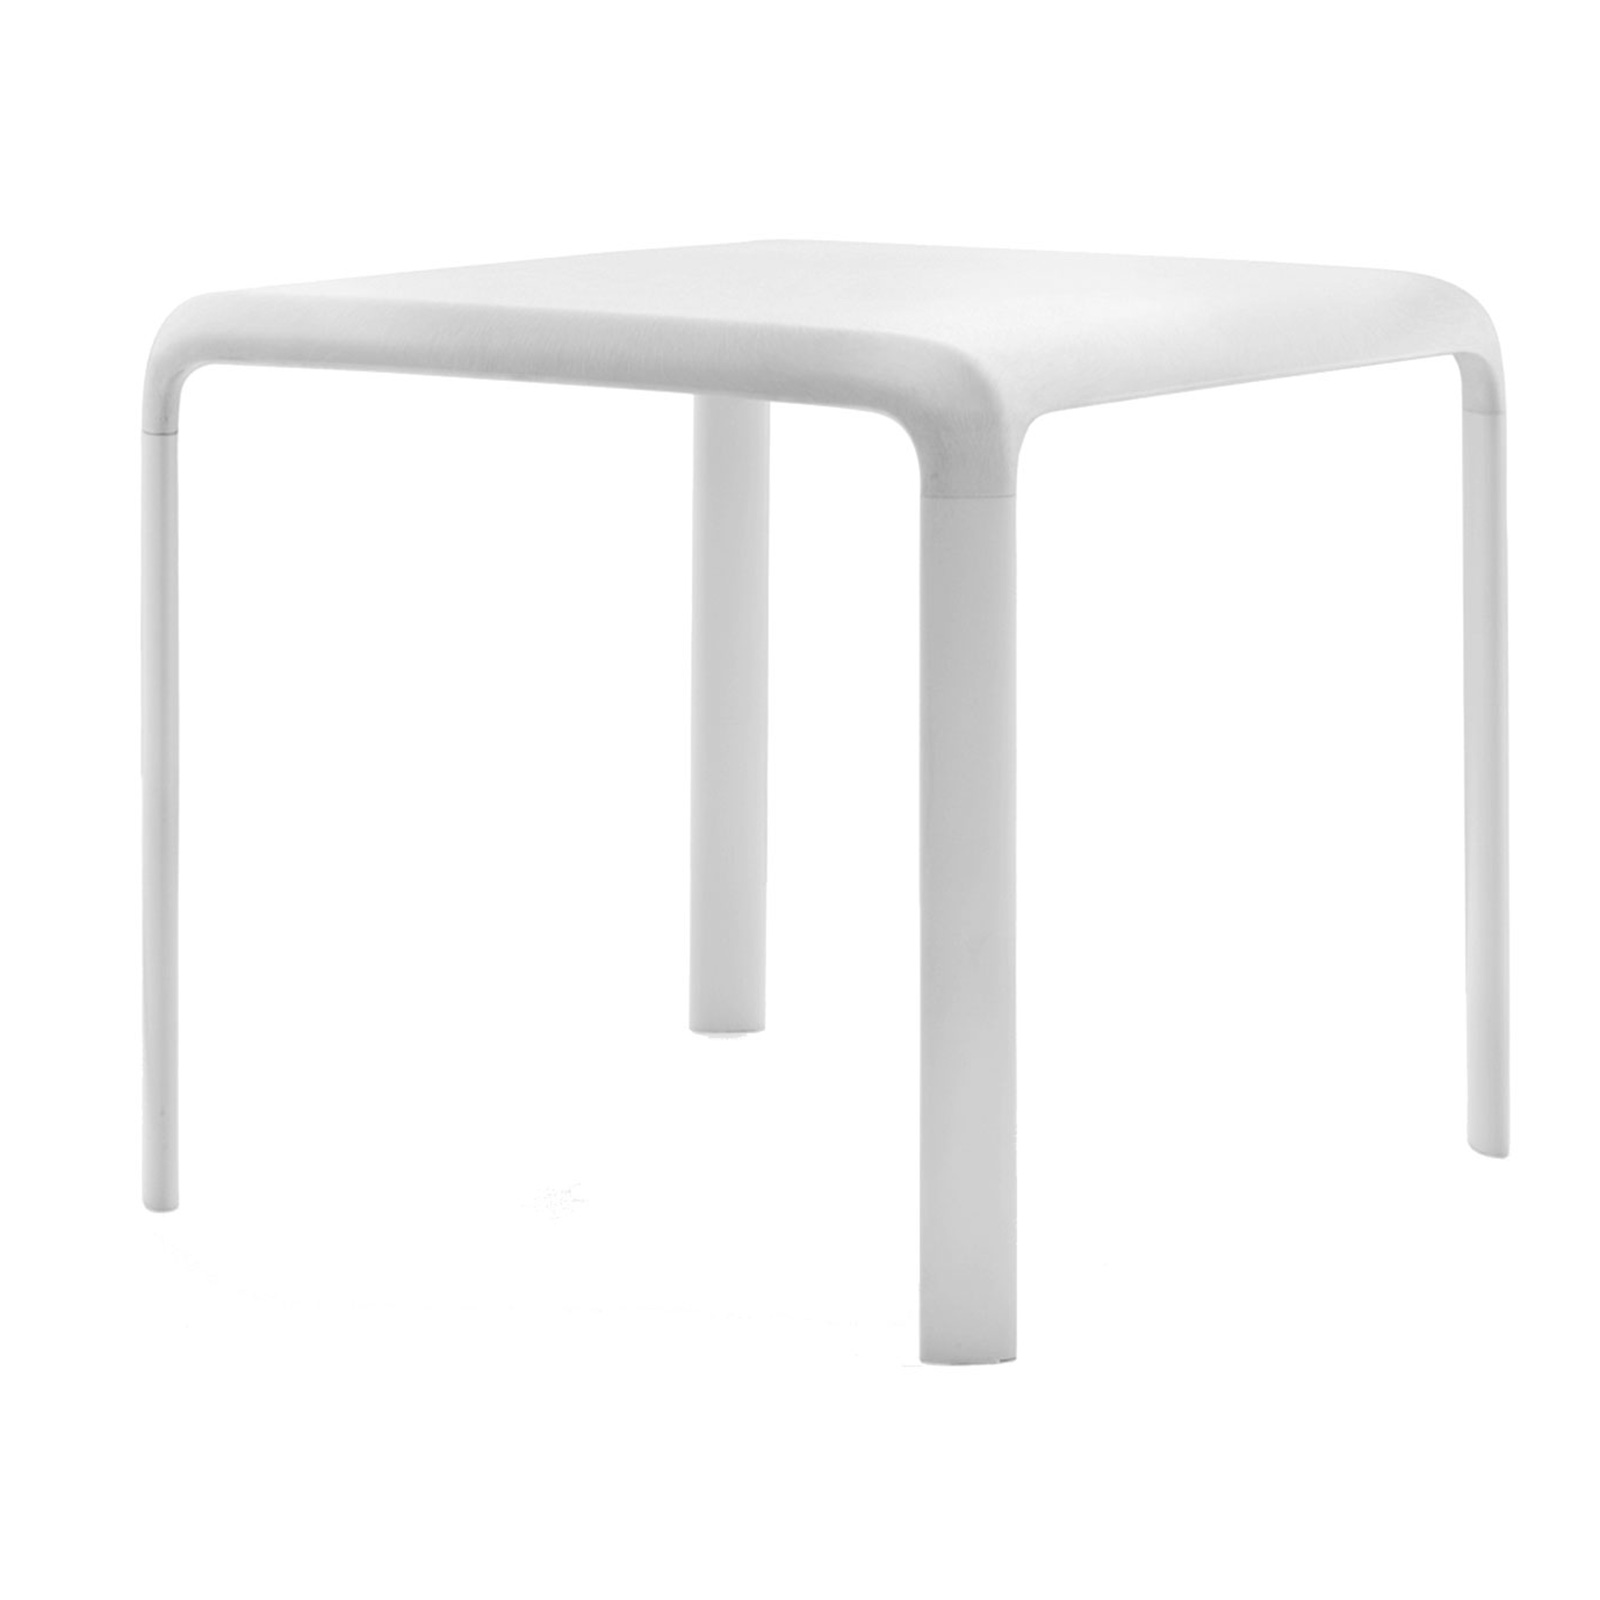 Florida Seating SNOW TABLE TOP SAND sofa seating low table, outdoor